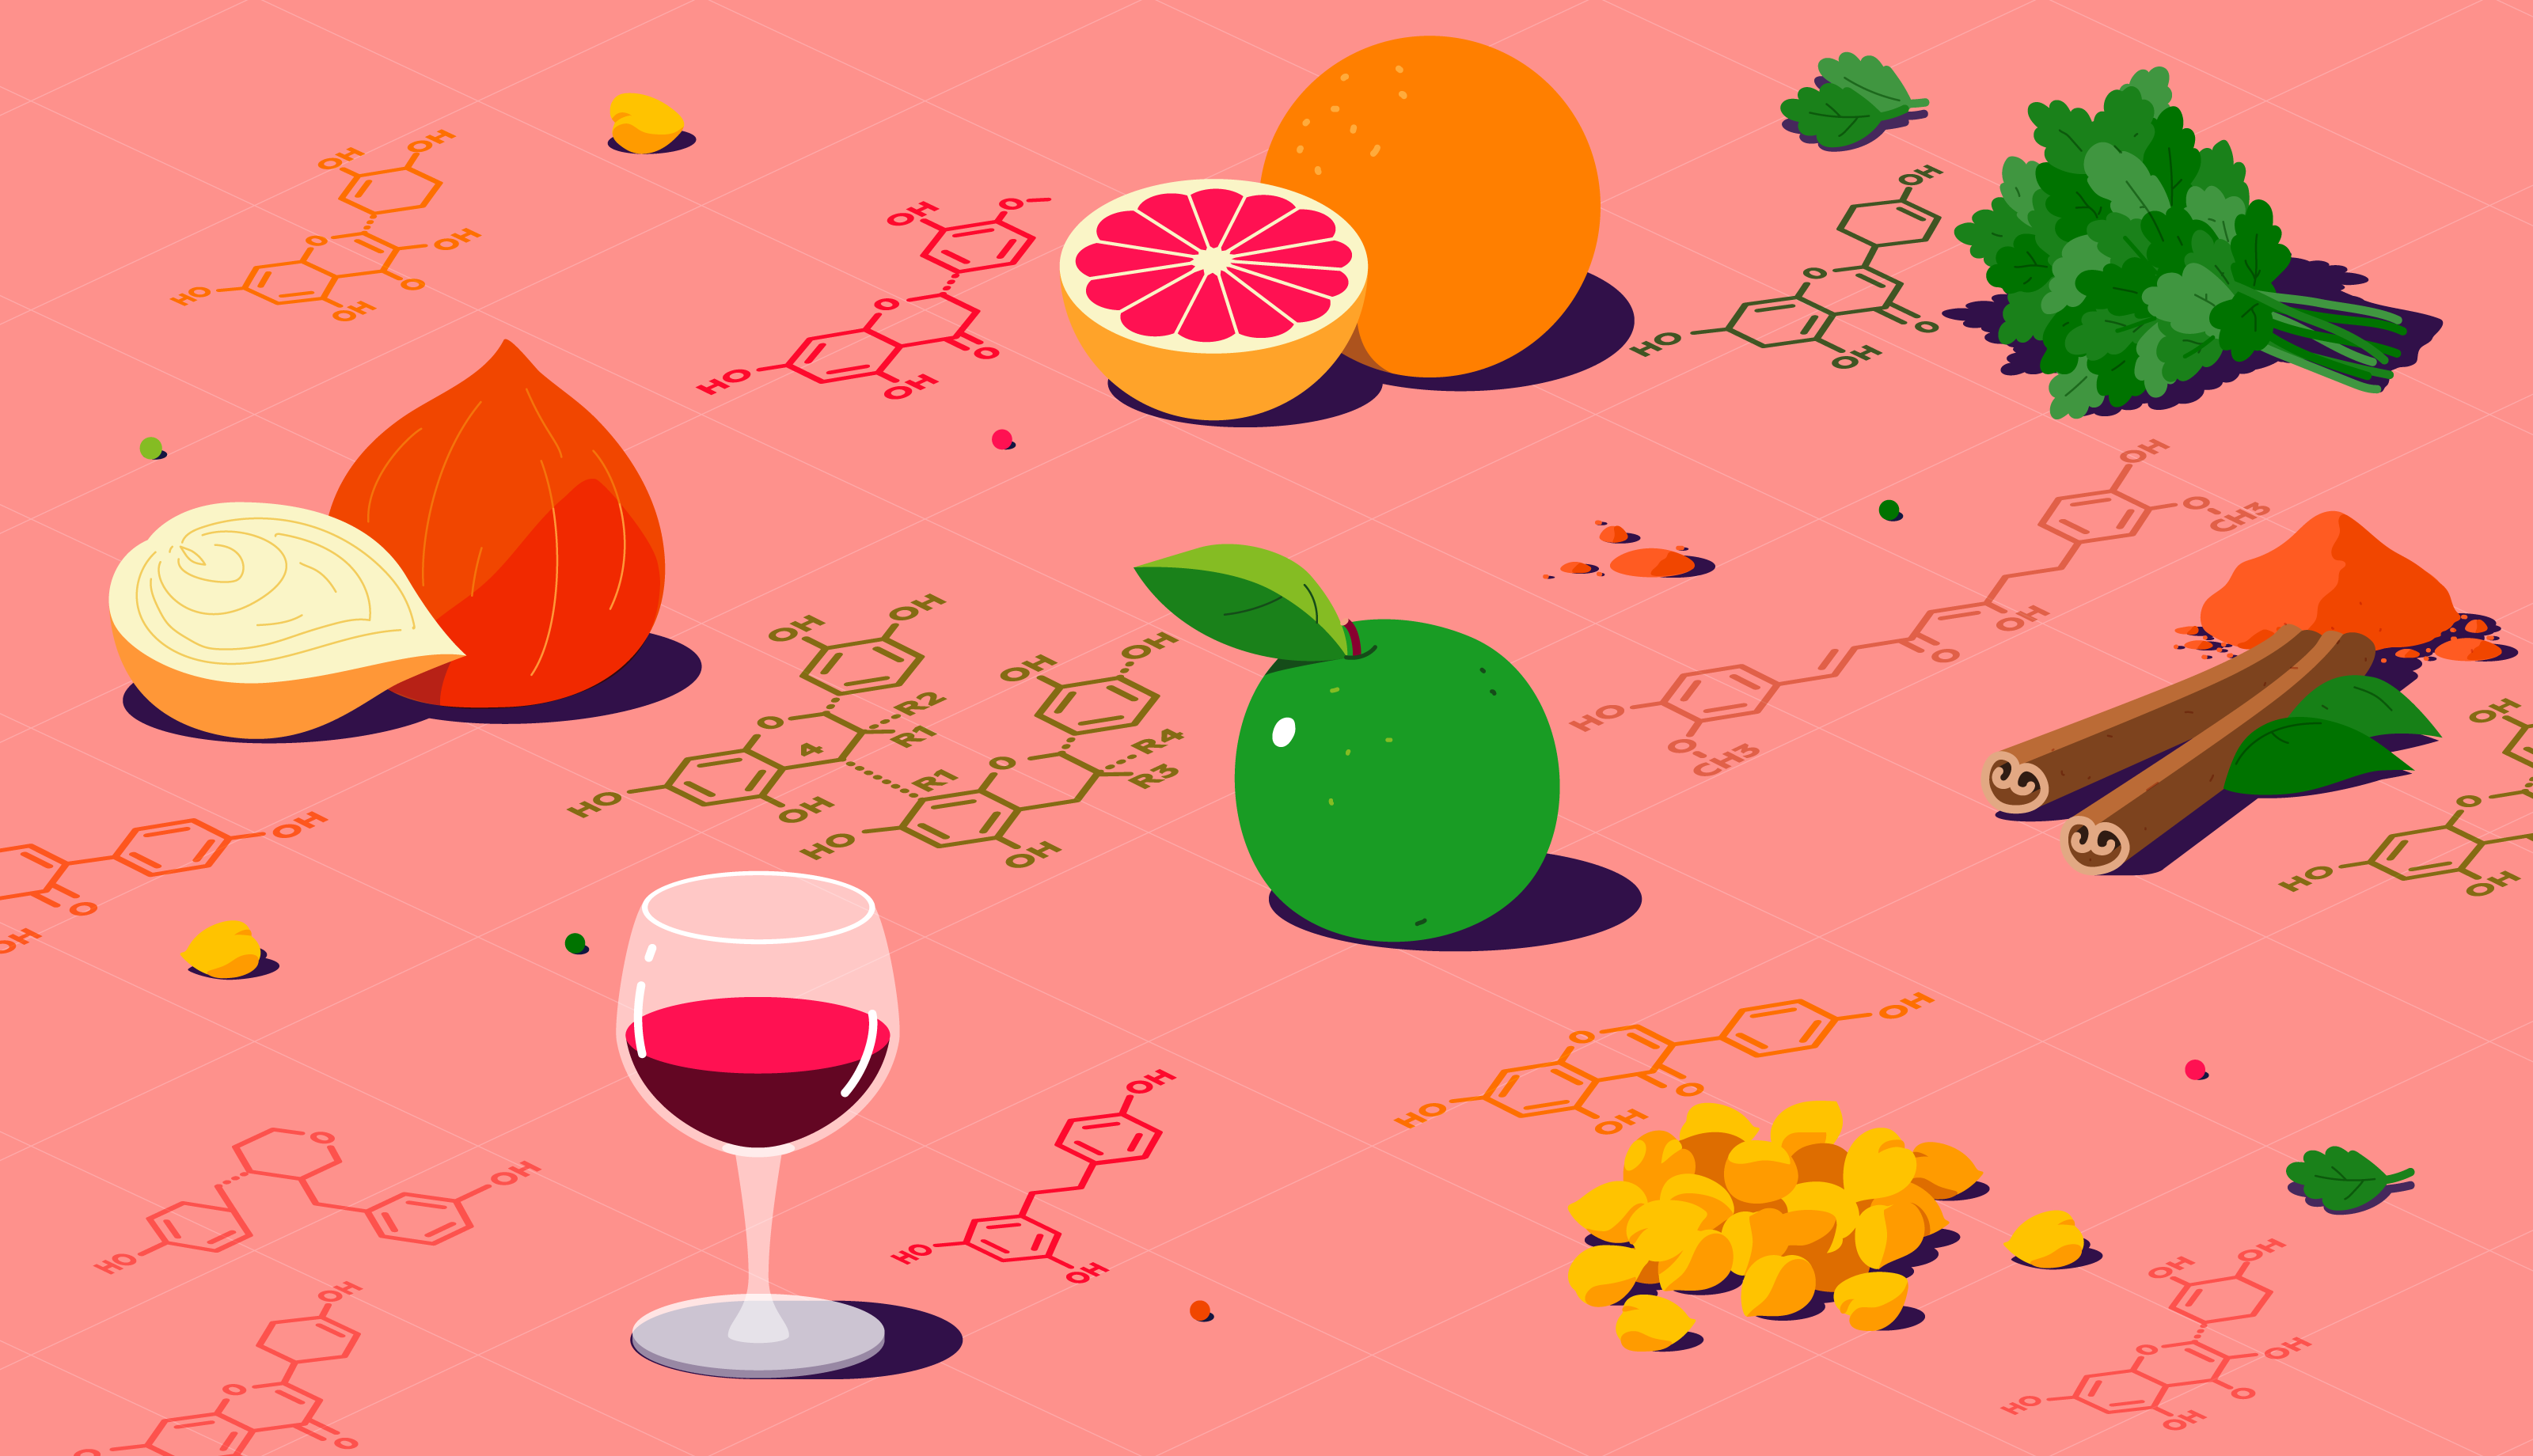 2019-10-09-Polyphenols-and-health